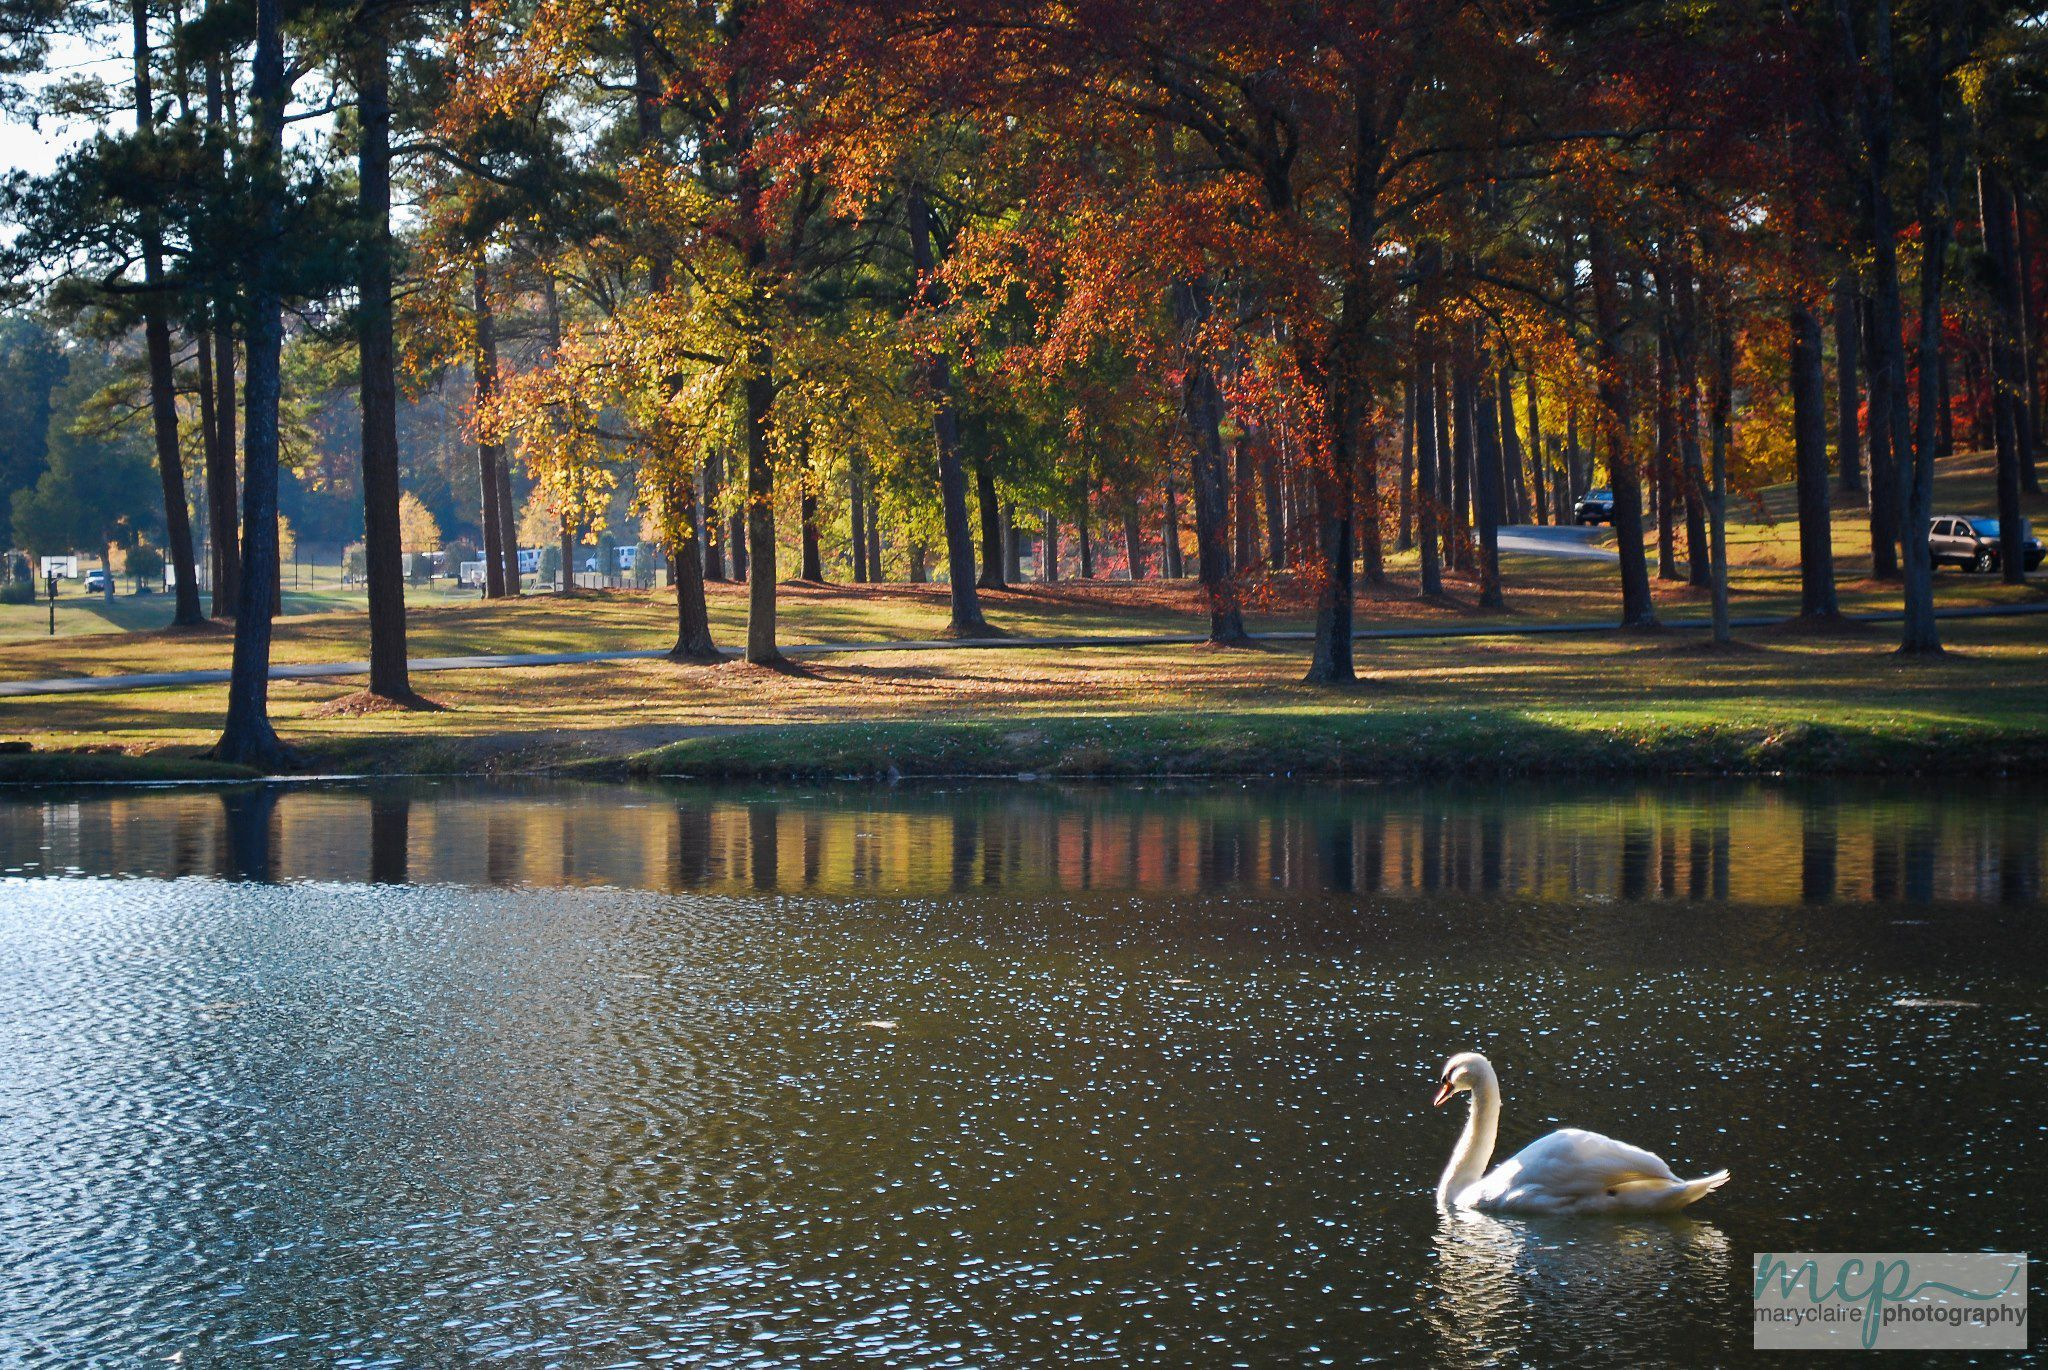 Swan Lake At Berry College In Rome Georgia